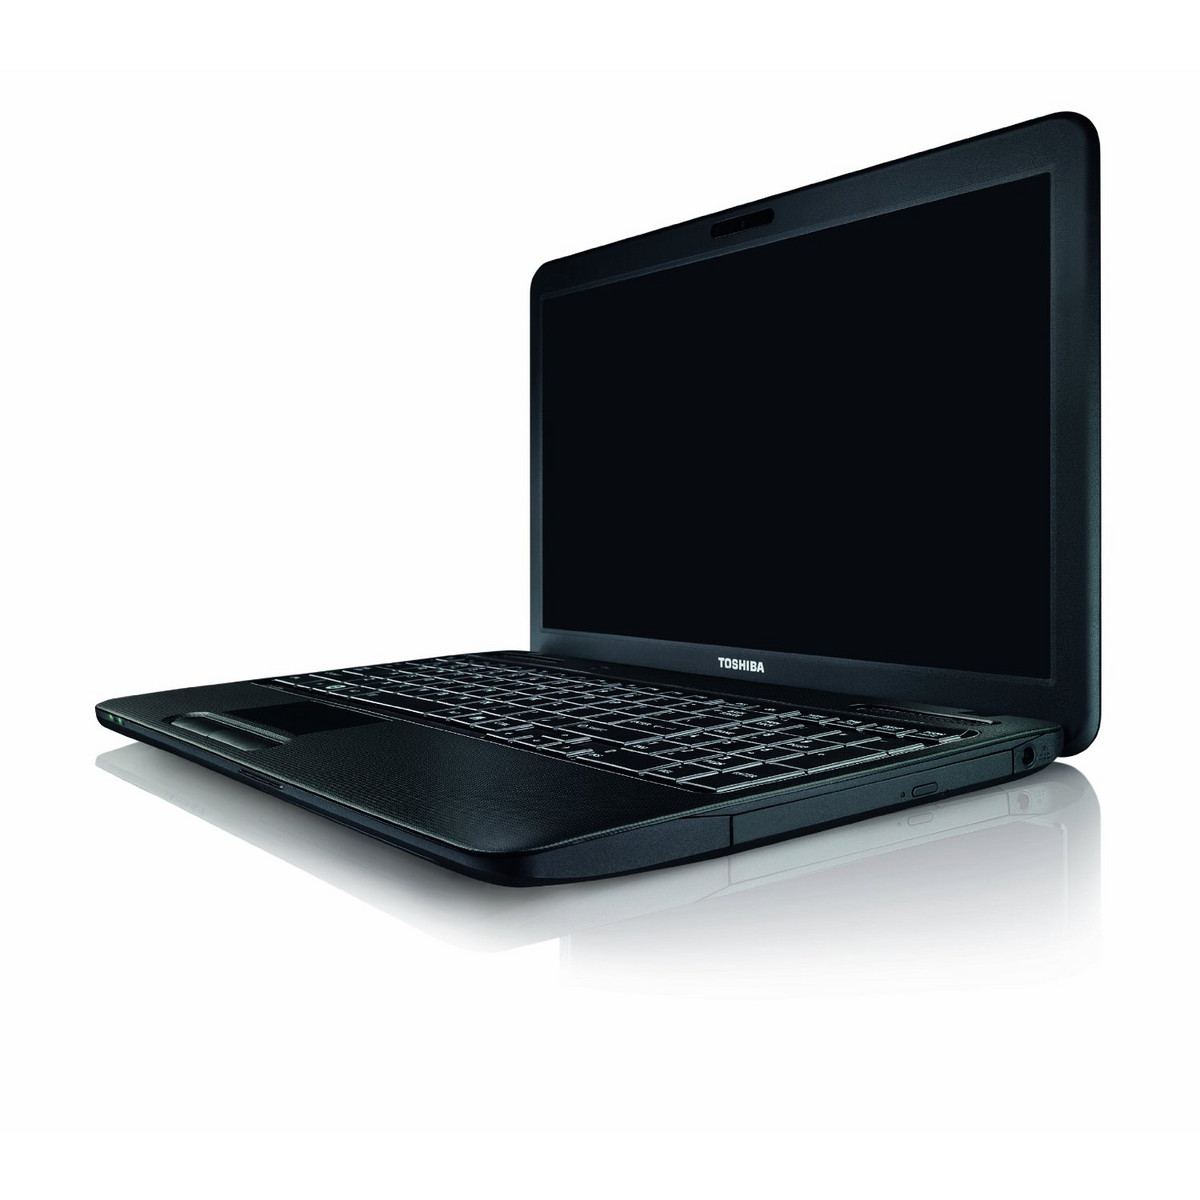 Toshiba Satellite Pro C660D ATI Graphics Drivers for Windows 10